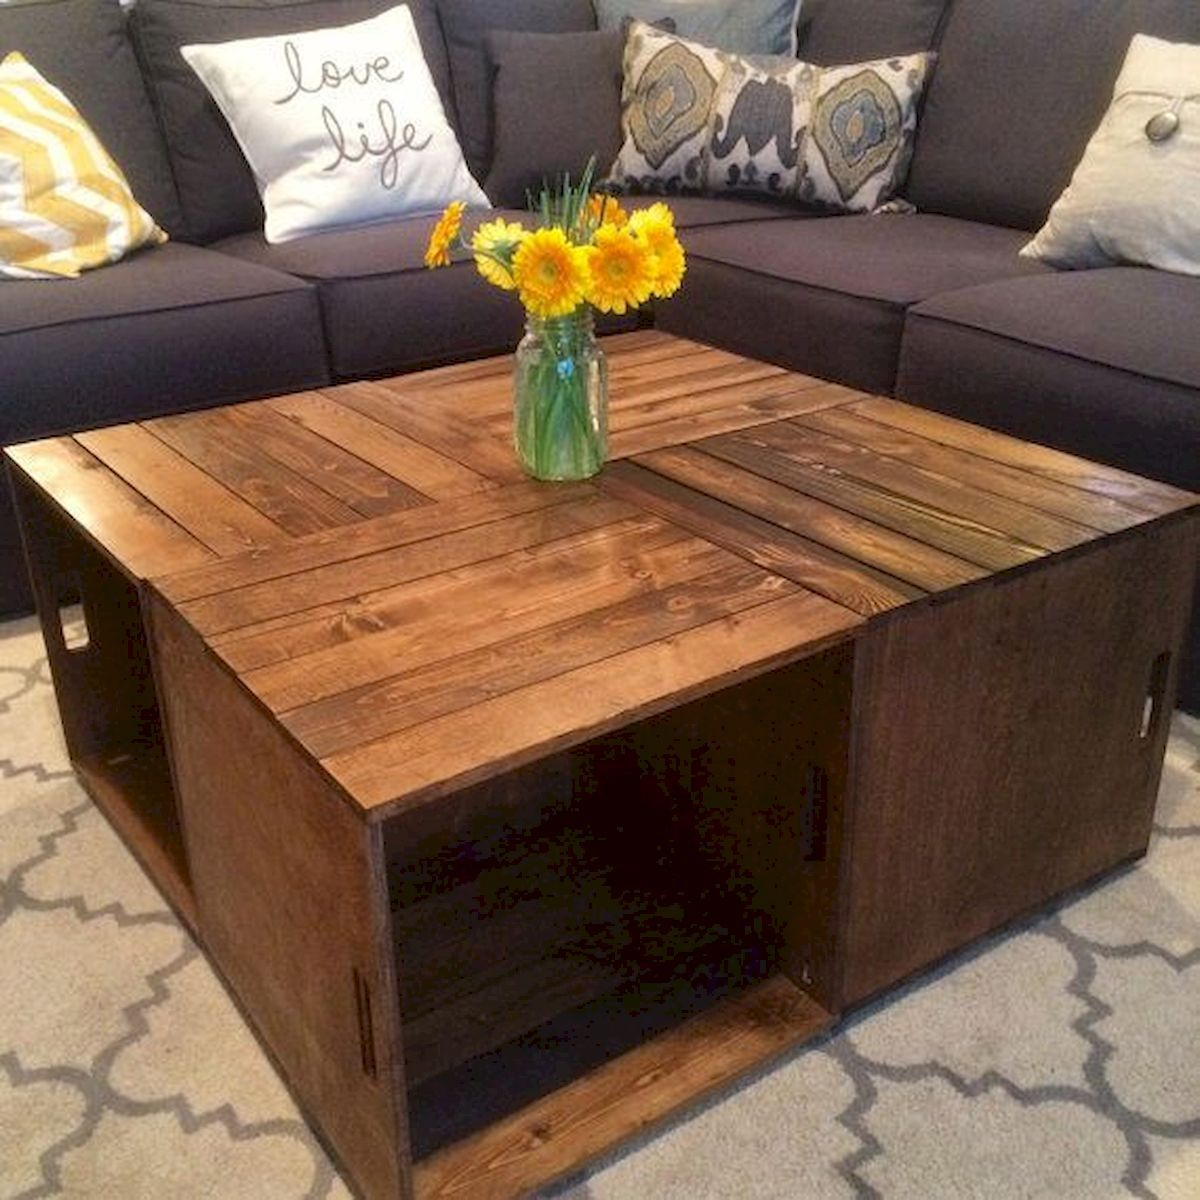 Simple Chic Coffee Table Decoration Ideas images